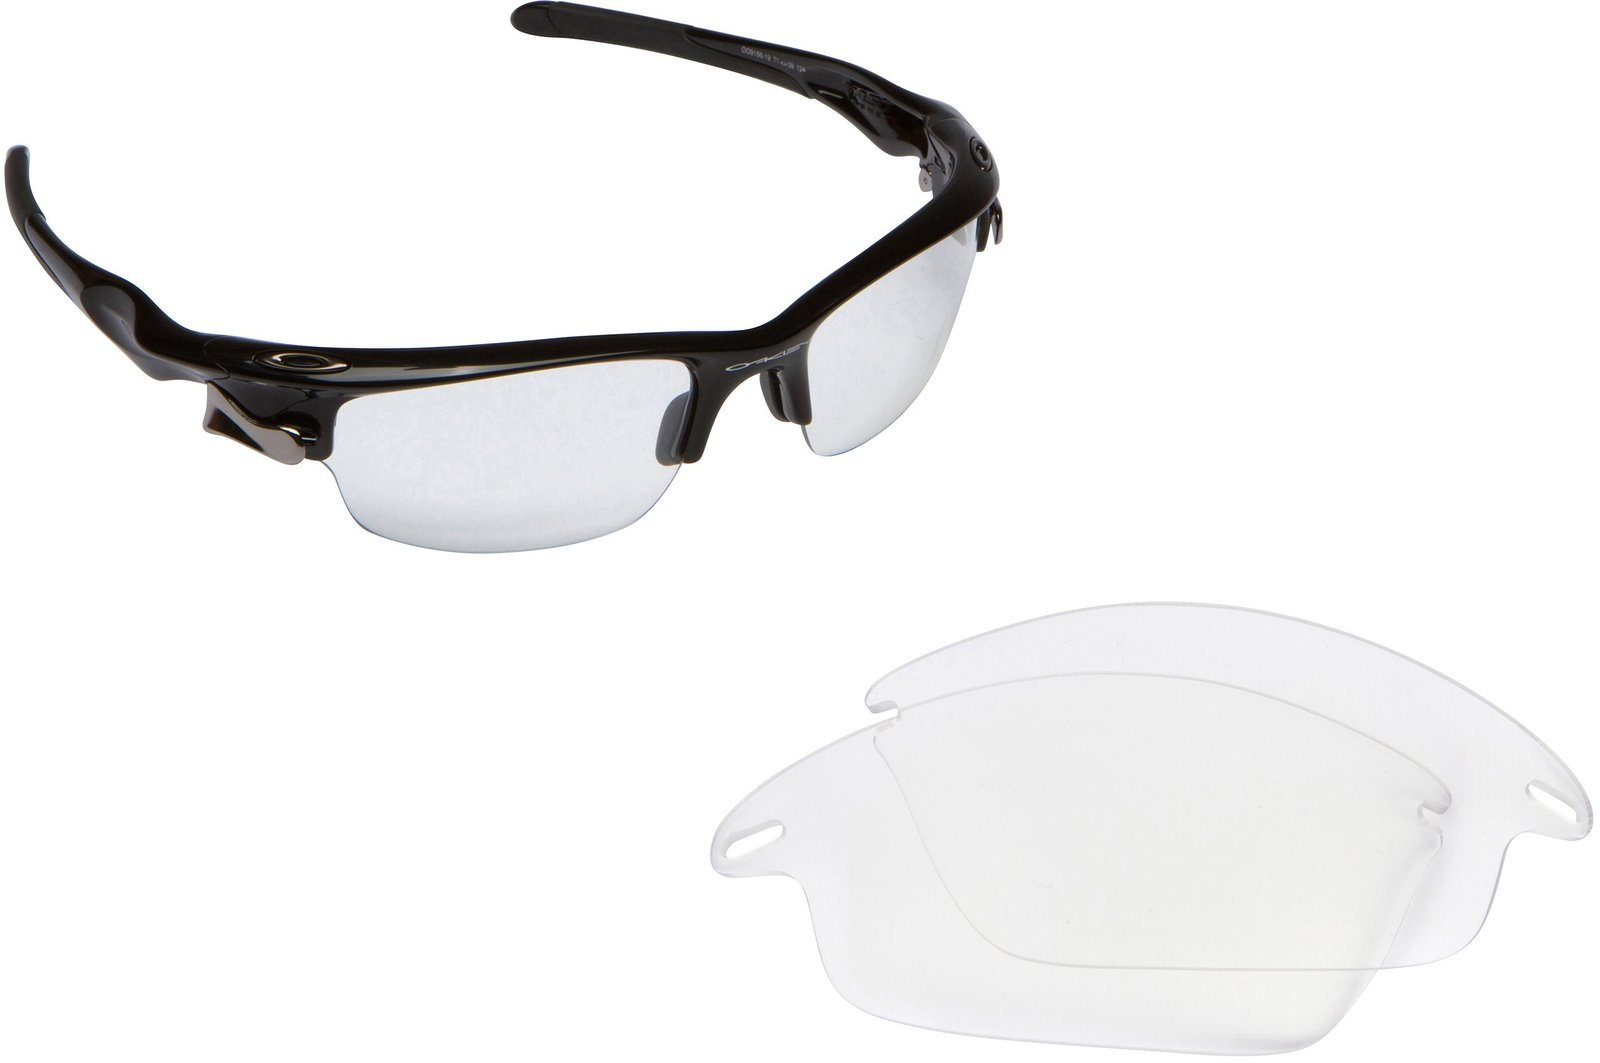 b5babfd02c New Seek Optics Replacement Lenses Oakley and 50 similar items. 71v0o0p3gql